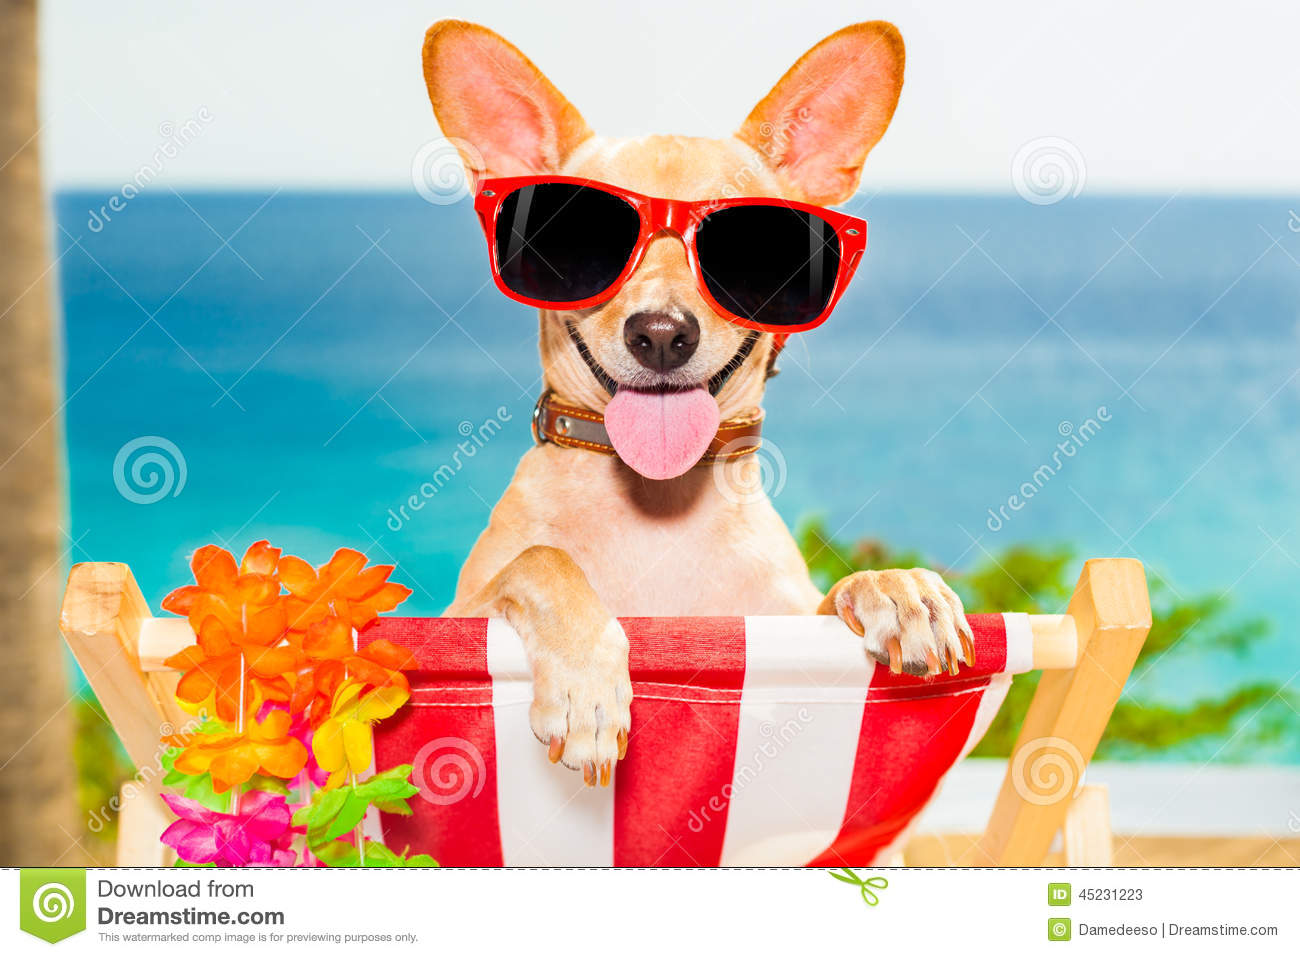 ... at the beach having a a relaxing time on a hammock while sun tanning Relaxing Dogs